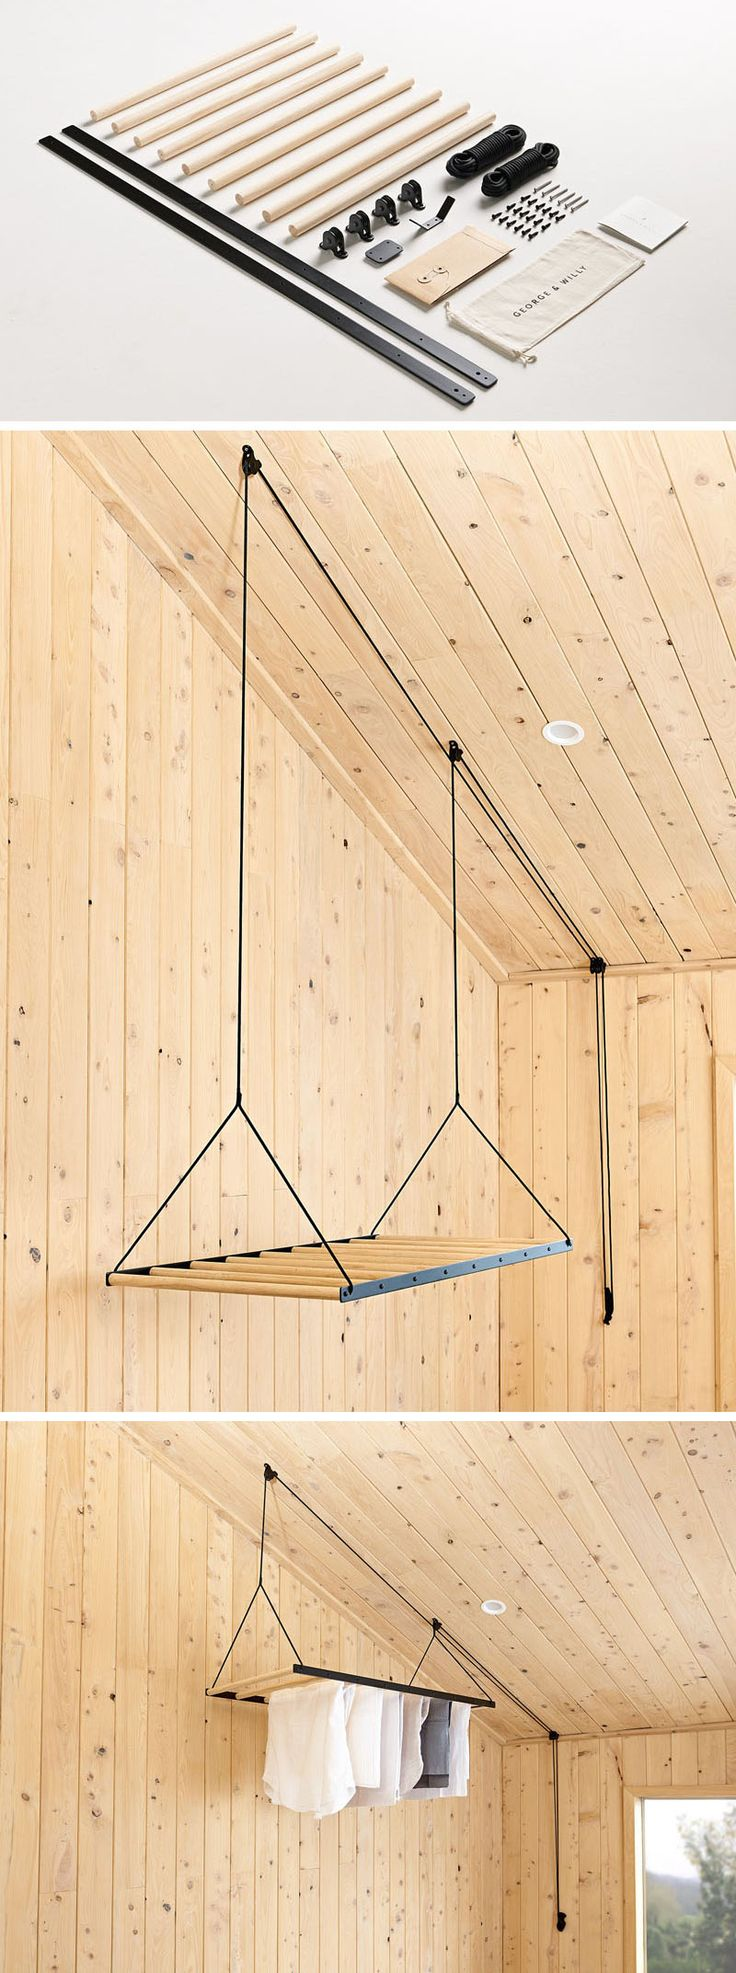 Uncategorized Hanging Clothes Drying Rack best 25 clothes drying racks ideas on pinterest new zealand based design firm george and willy have created a modern hanging rack